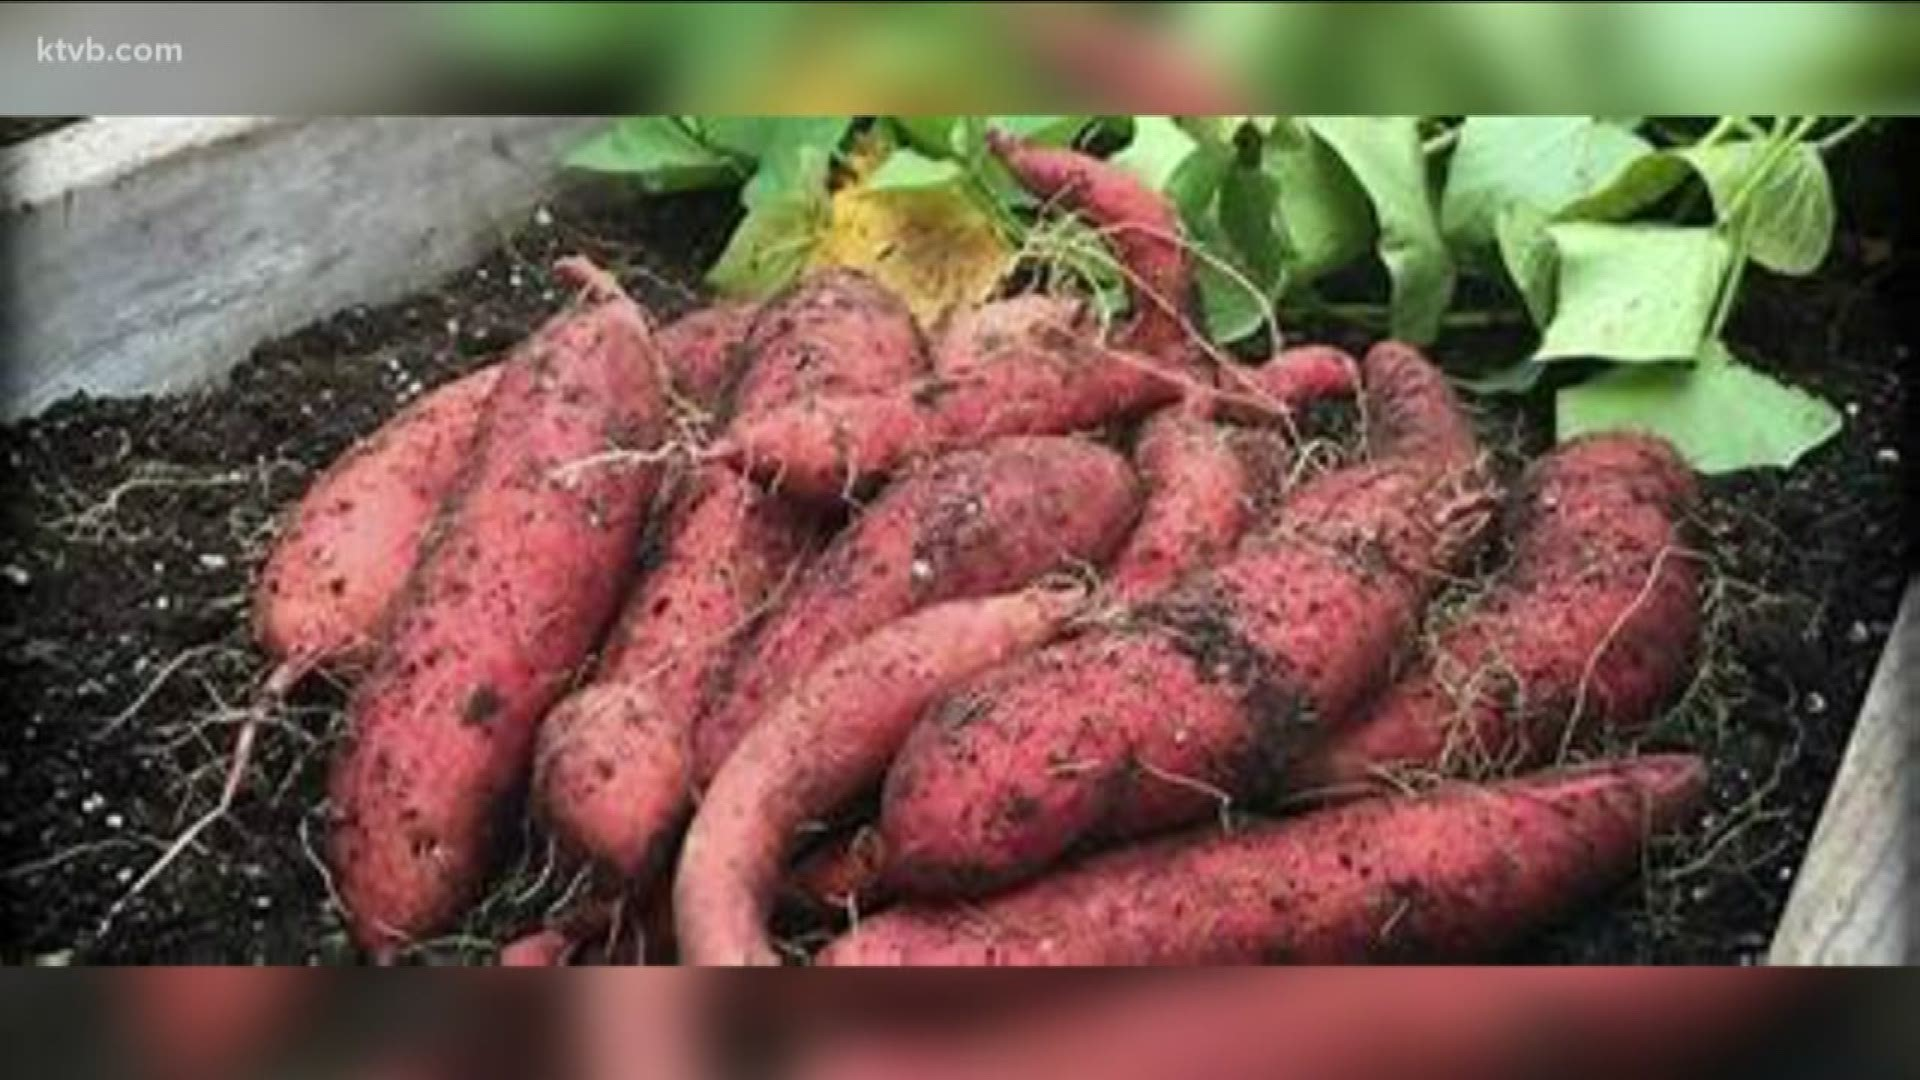 You Can Grow It Sweet Potatoes Are A Delicious Addition To Your Garden Ktvb Com